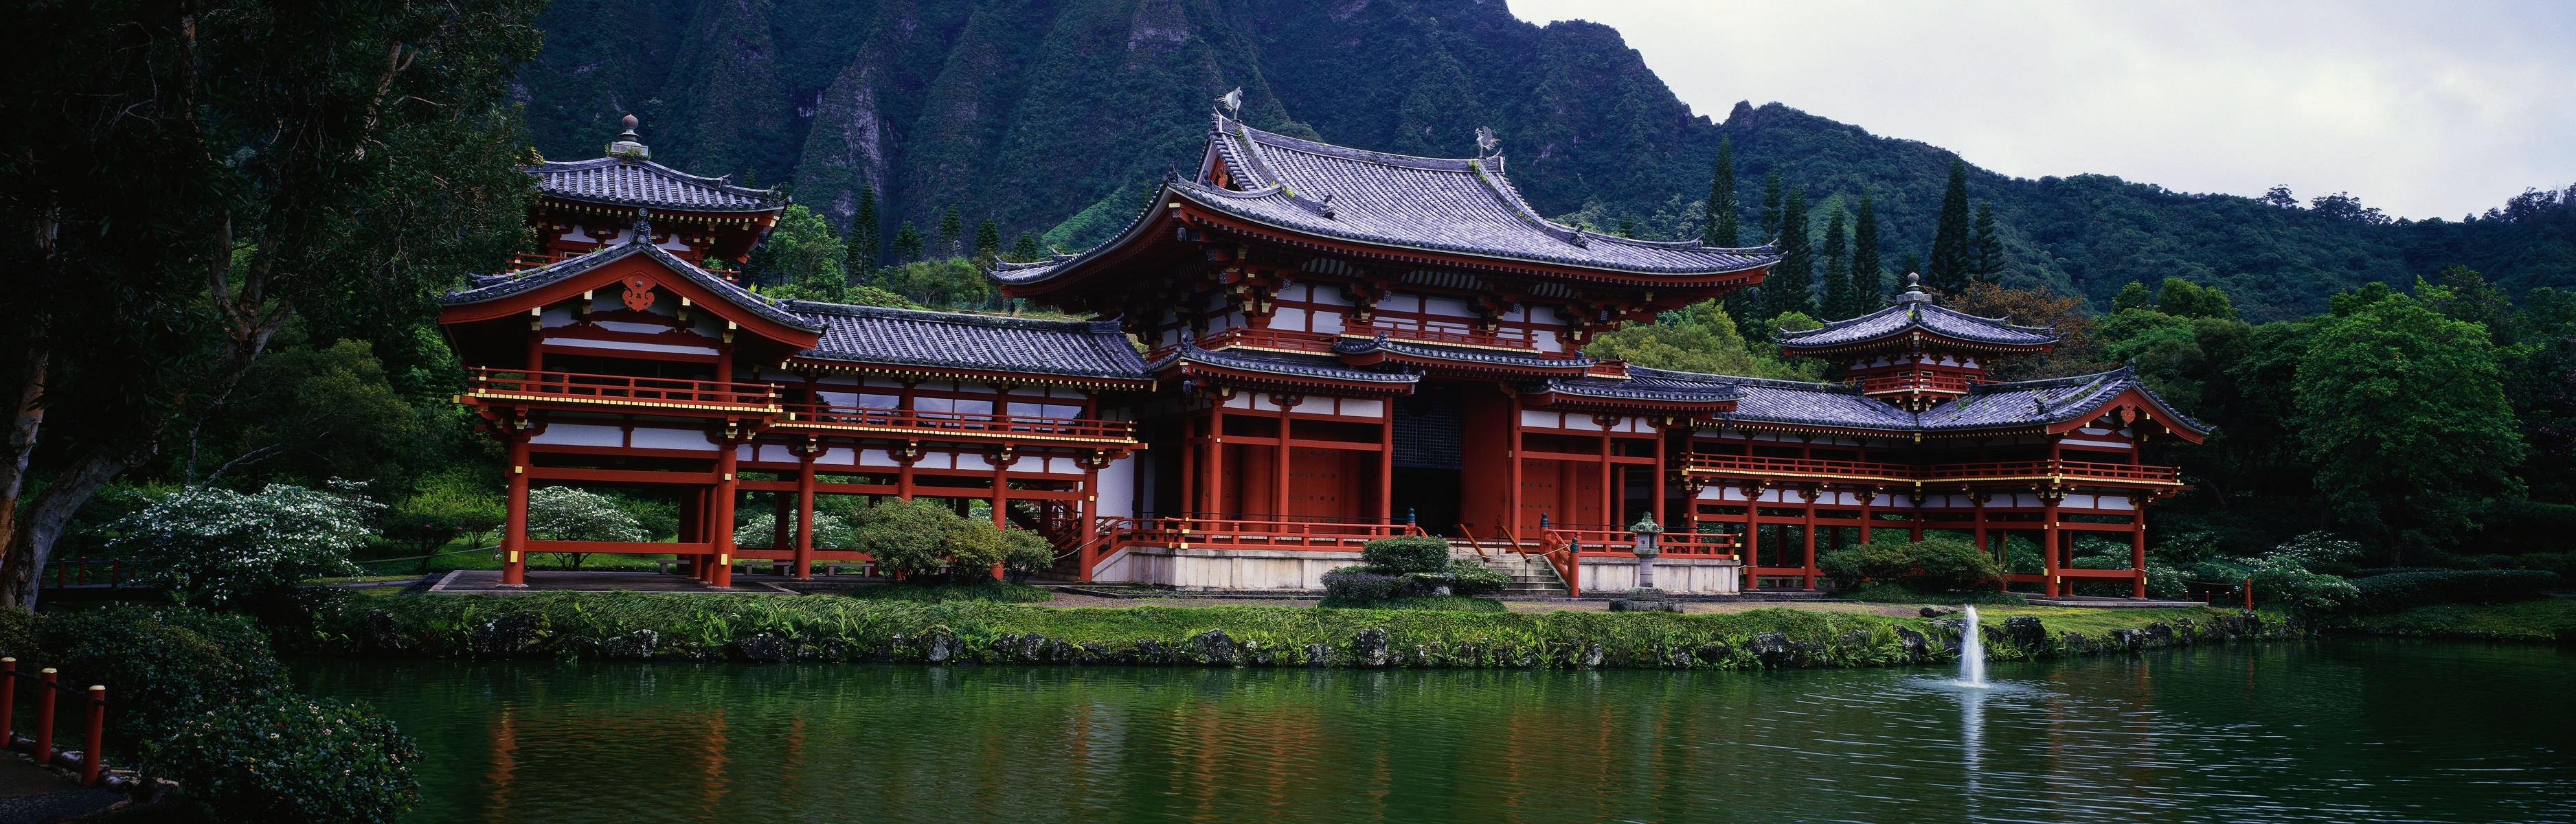 Asian Architecture Full HD Wallpaper And Background Image